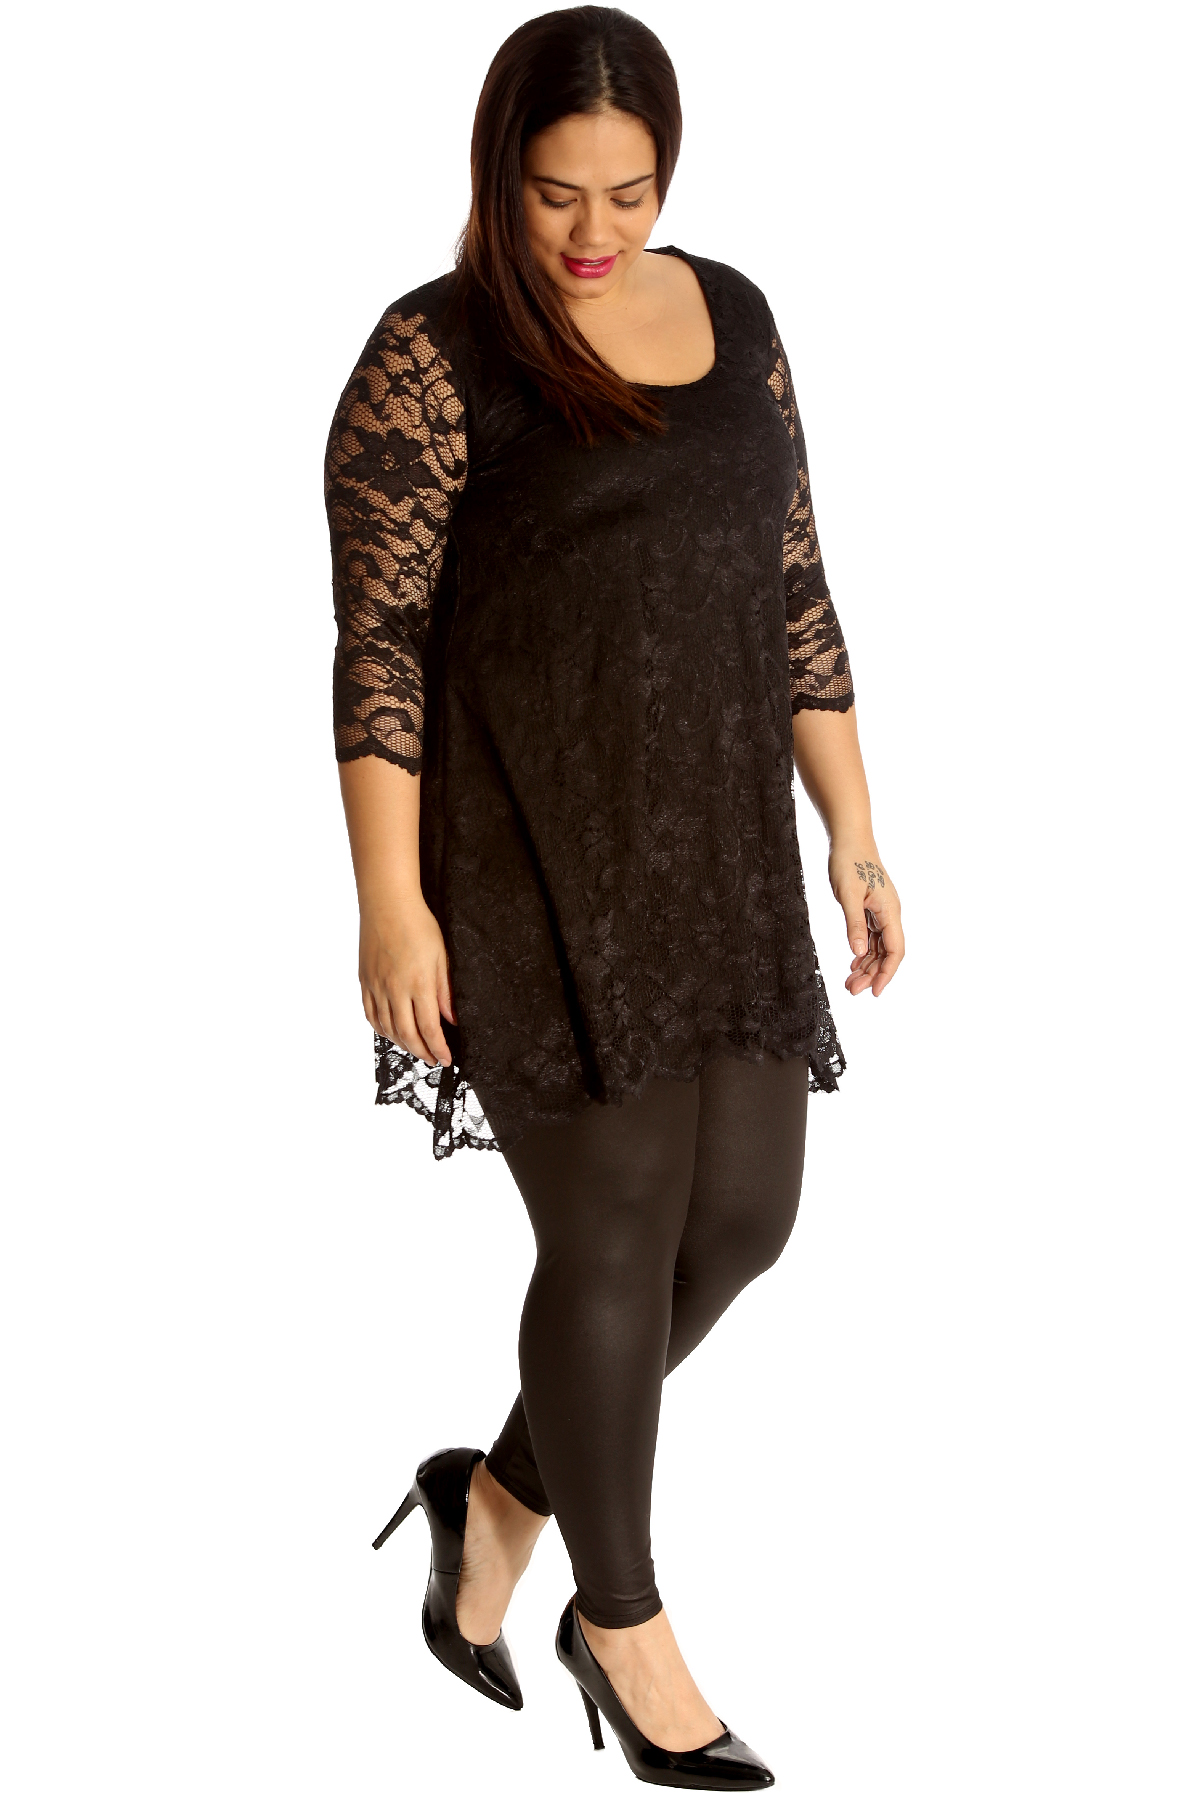 Neuf-Mesdames-Grand-Taille-Robe-Femmes-Tunique-Floral-Lacet-Coquille-Haut-Vente